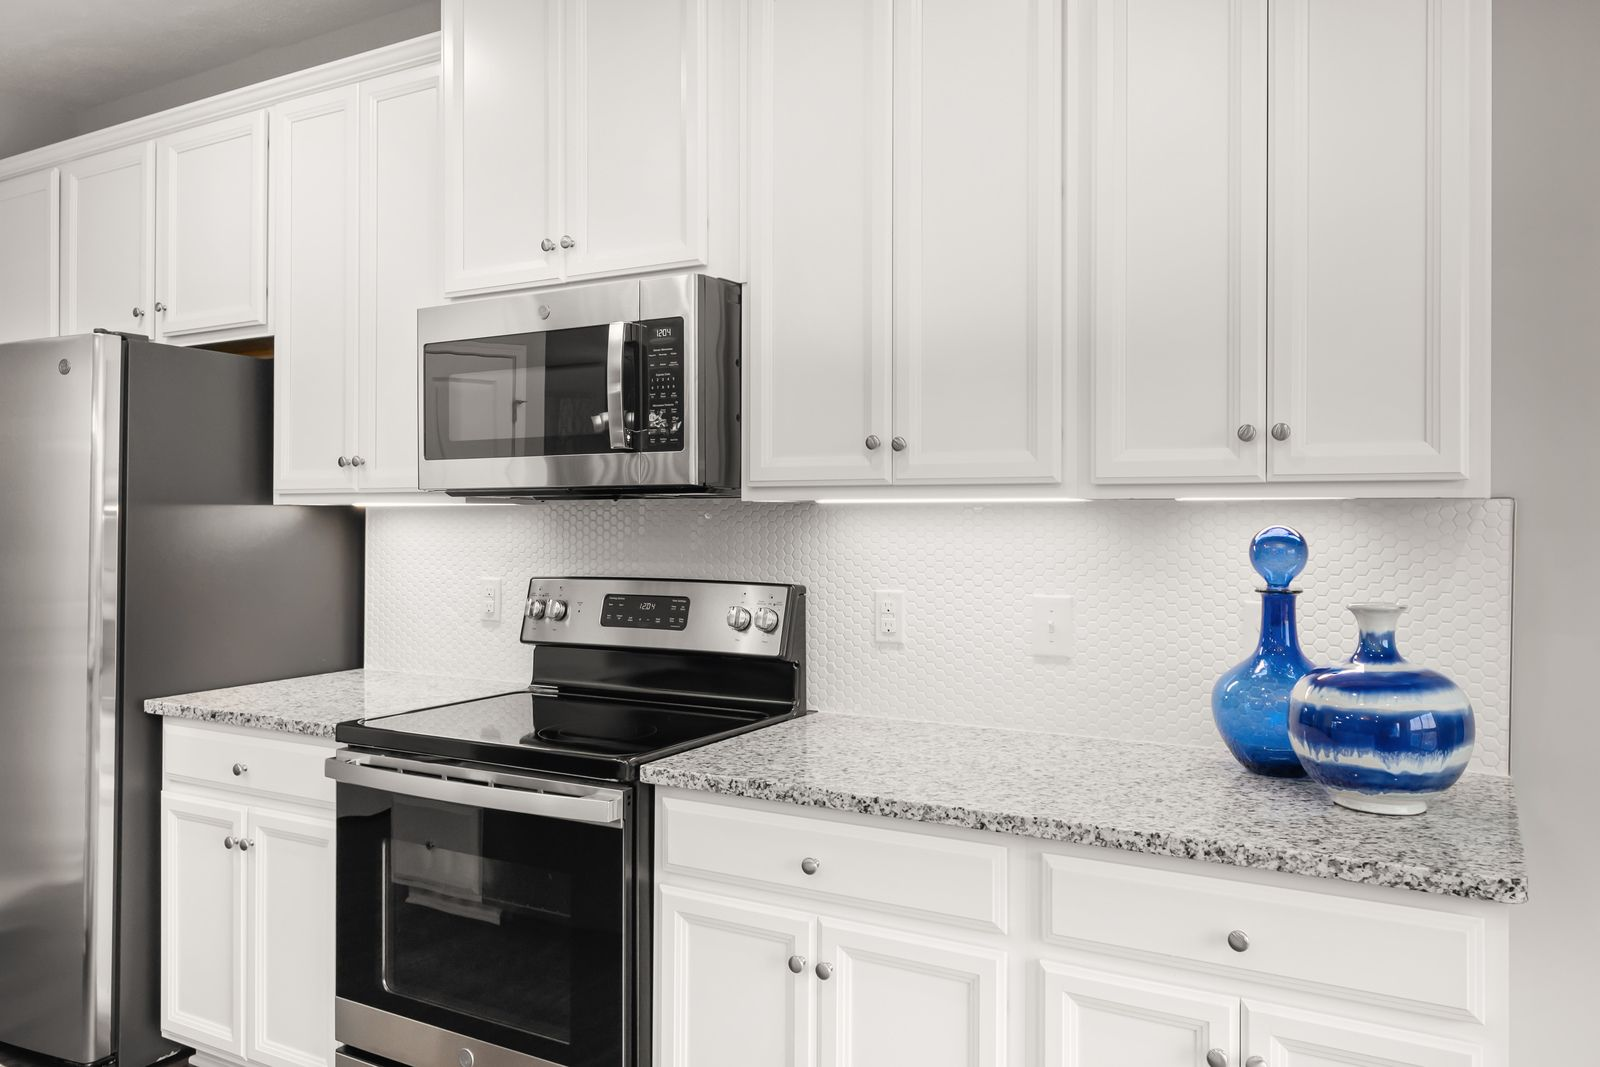 Kitchen featured in the Aviano By Ryan Homes in Ocean City, MD